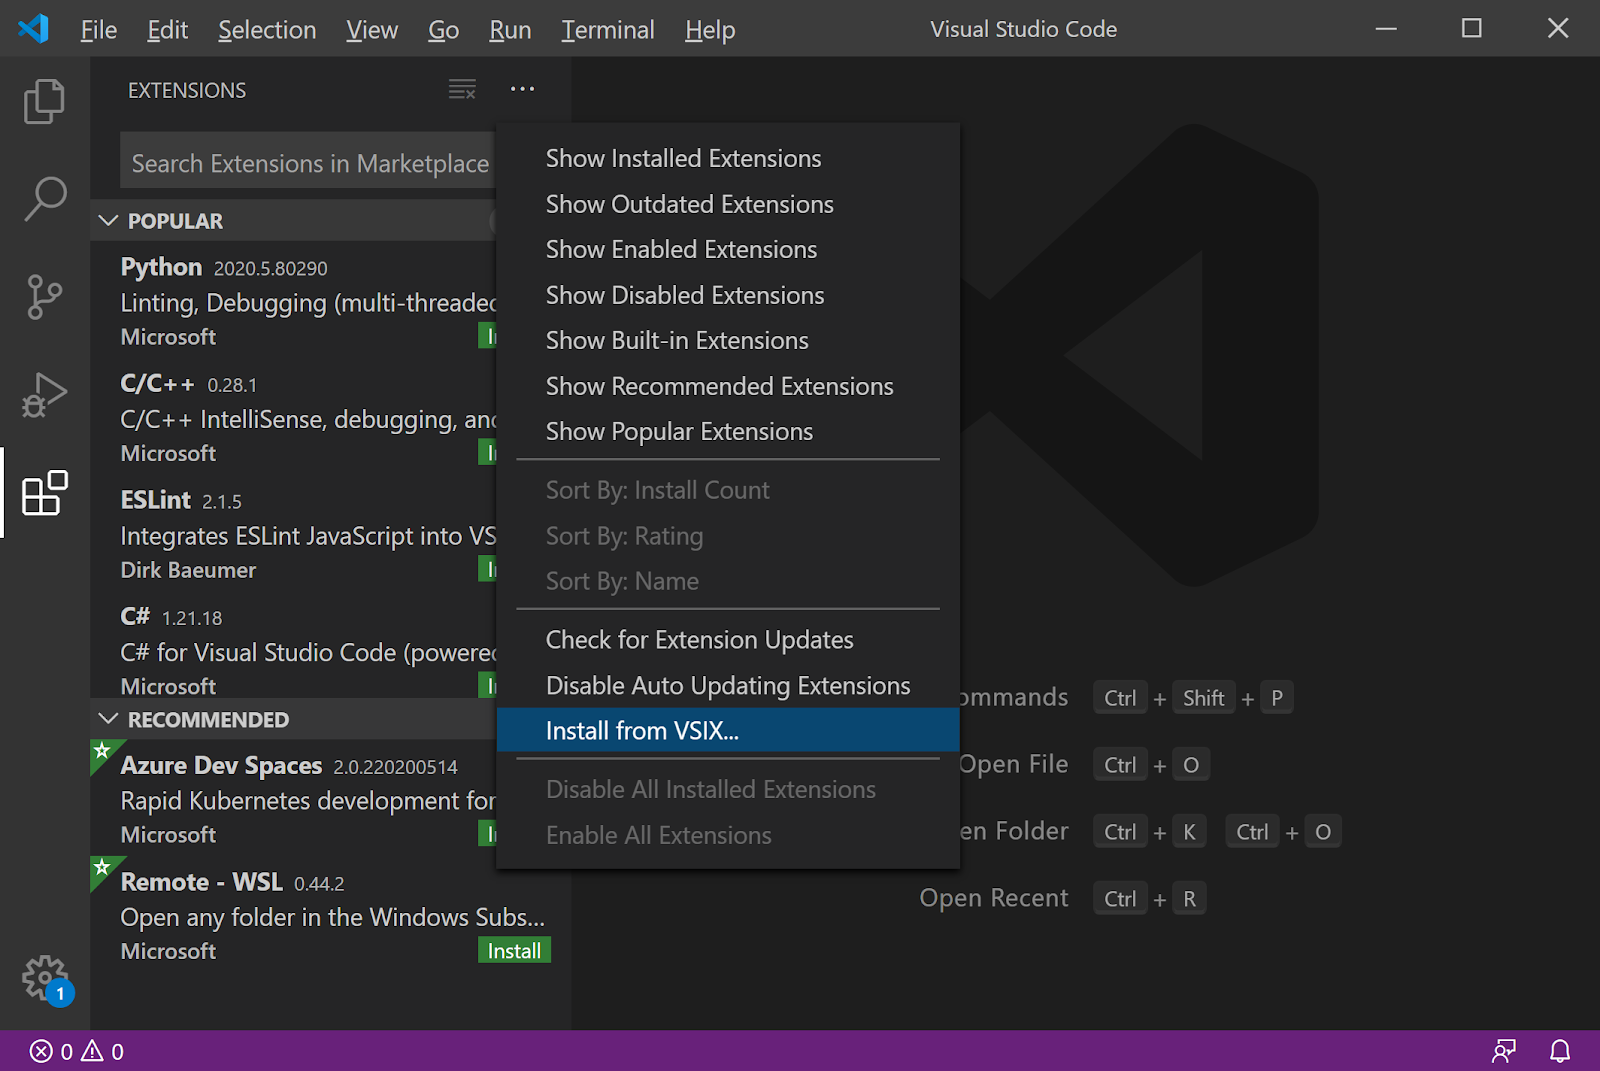 Visual Studio Code Install from VSIX menu item